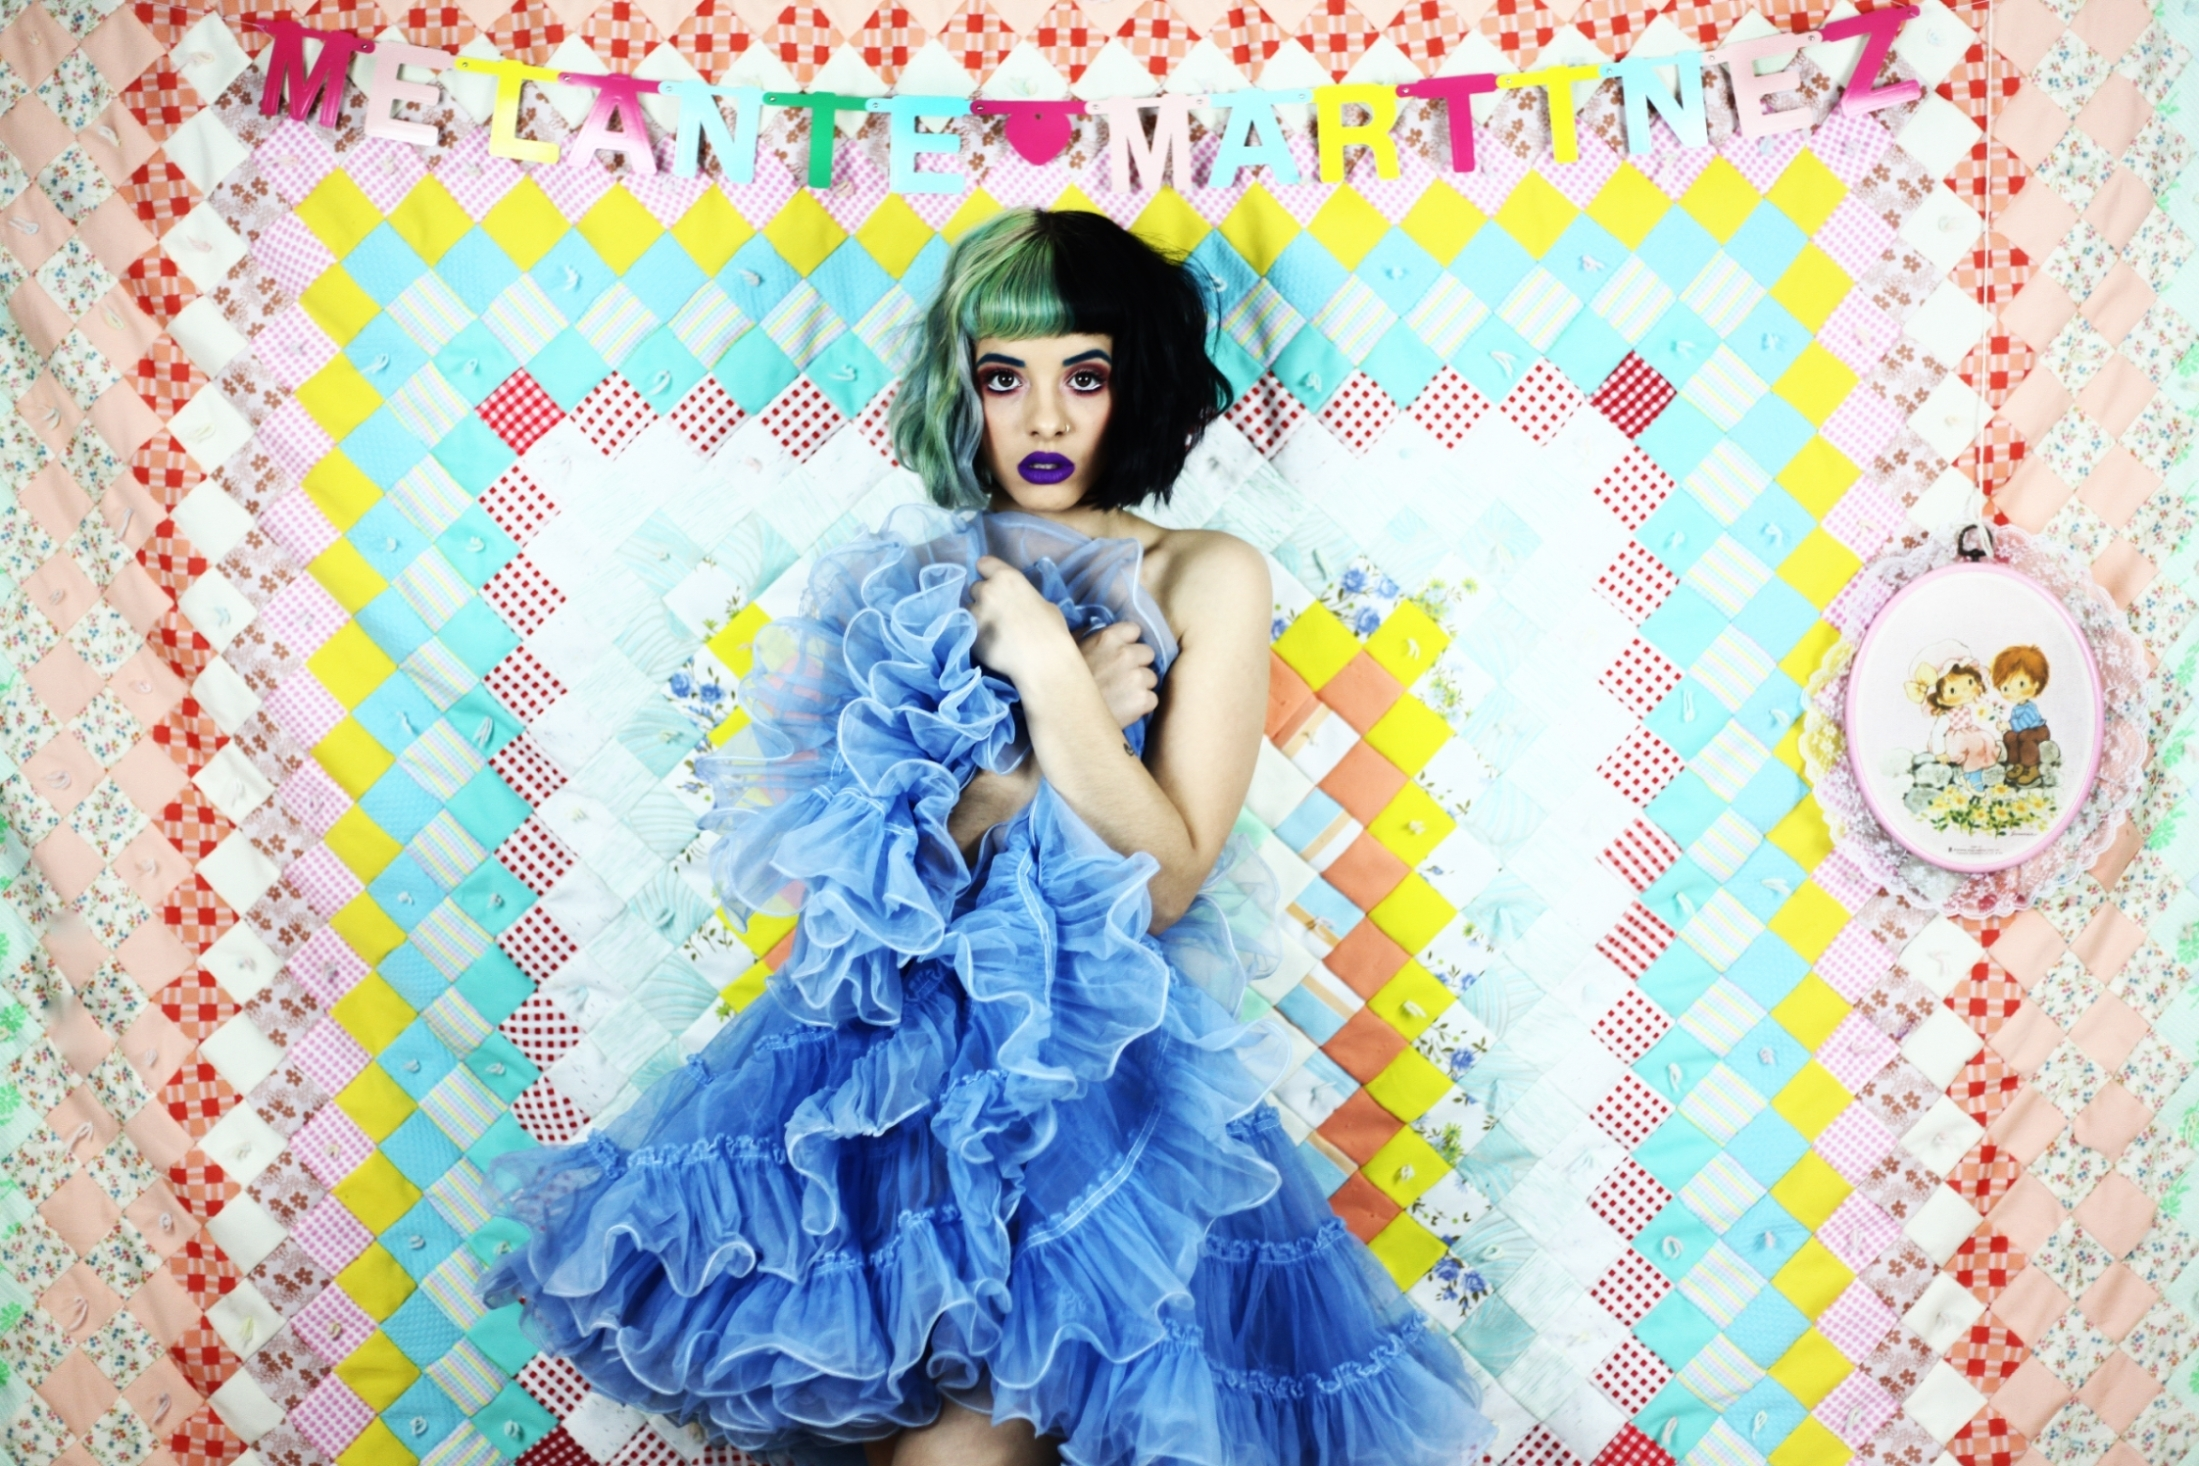 melanie martinez wallpapers images photos pictures backgrounds